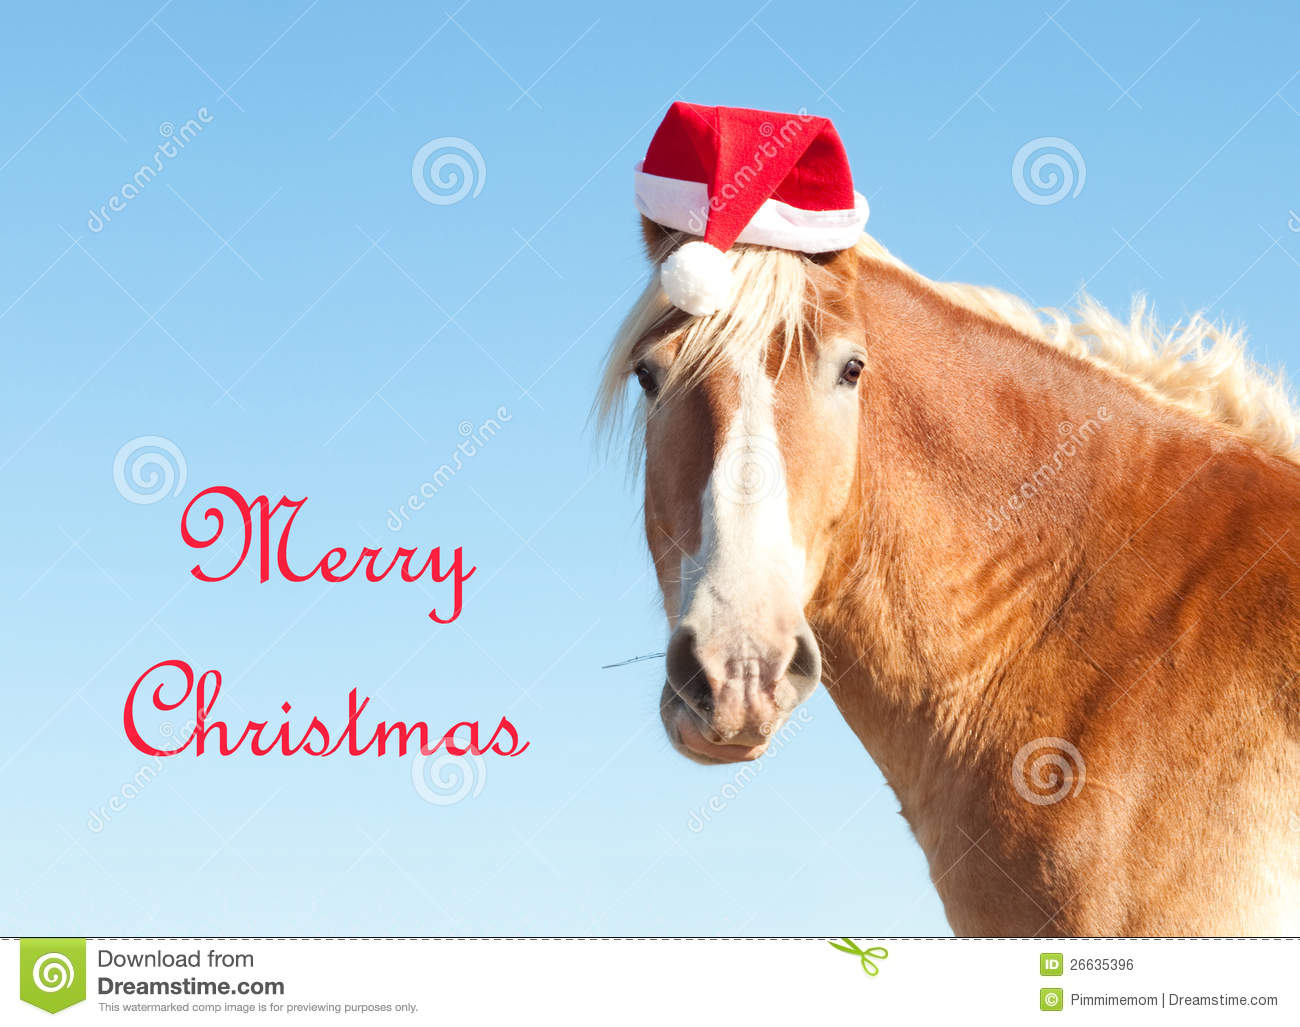 3 454 Merry Christmas Horse Photos Free Royalty Free Stock Photos From Dreamstime